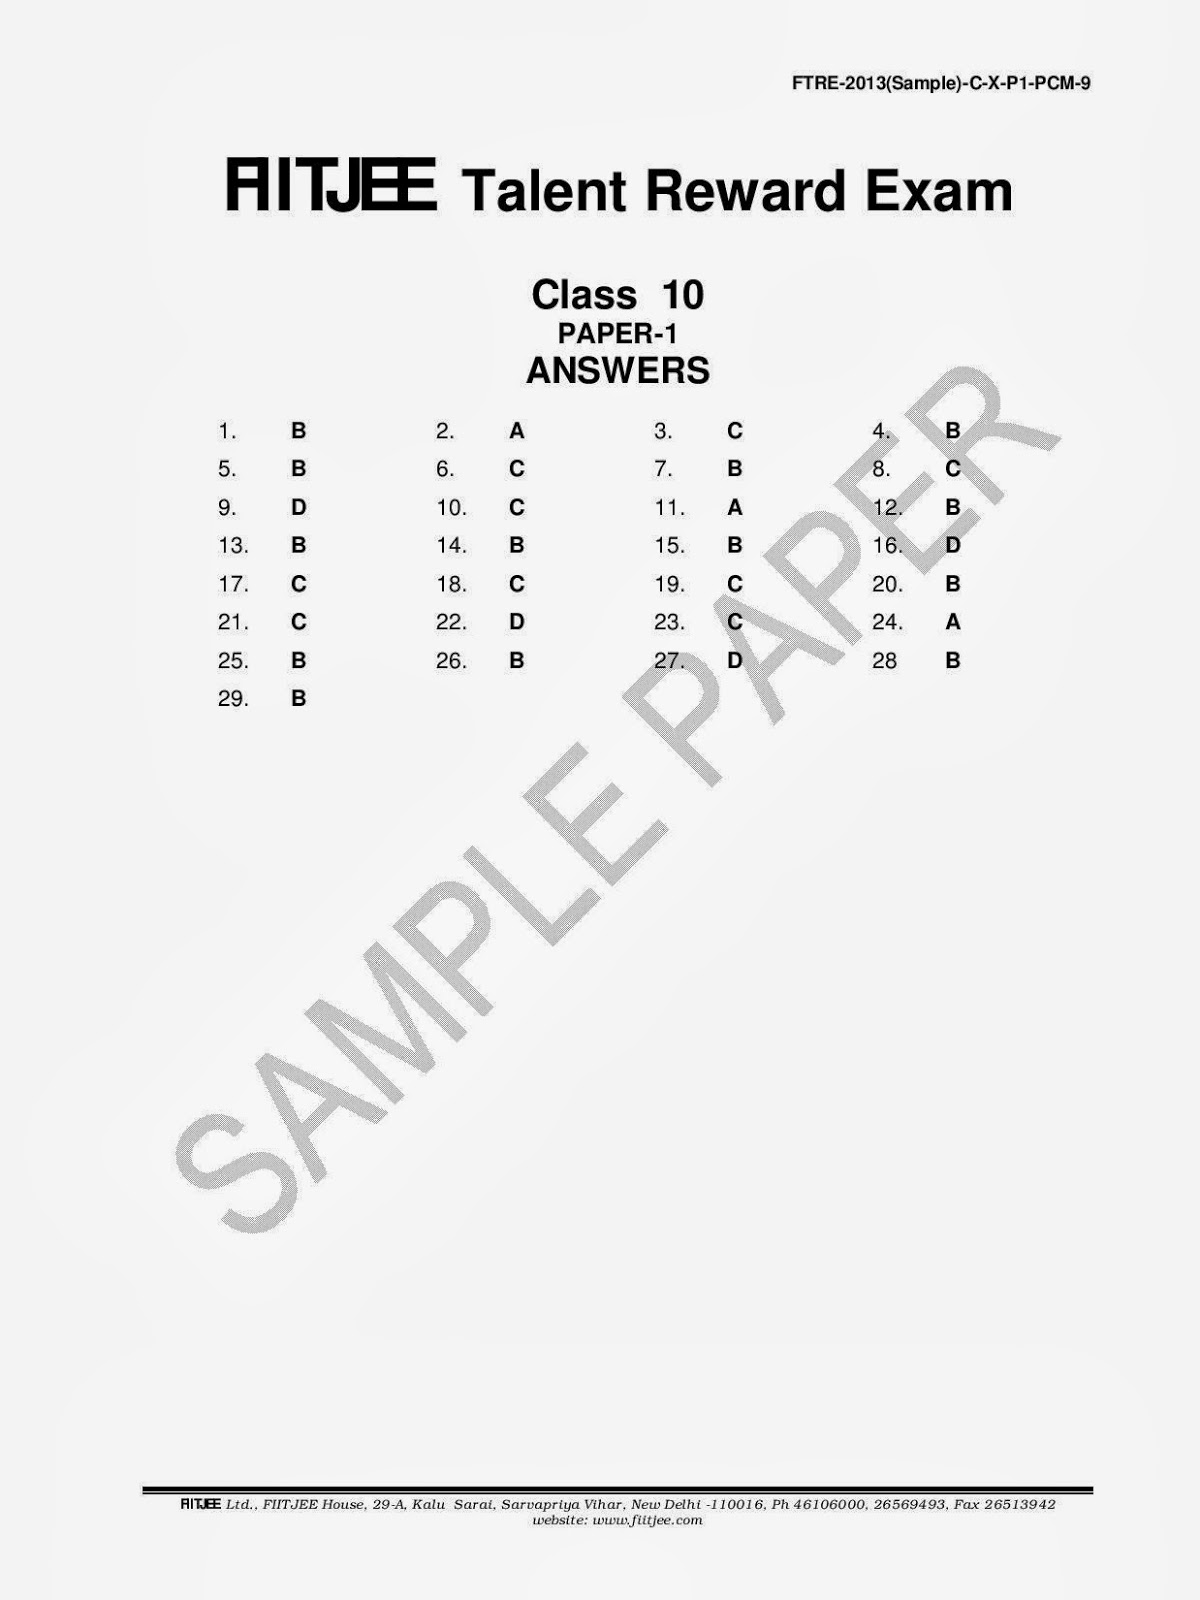 FTRE exam Sample Papers